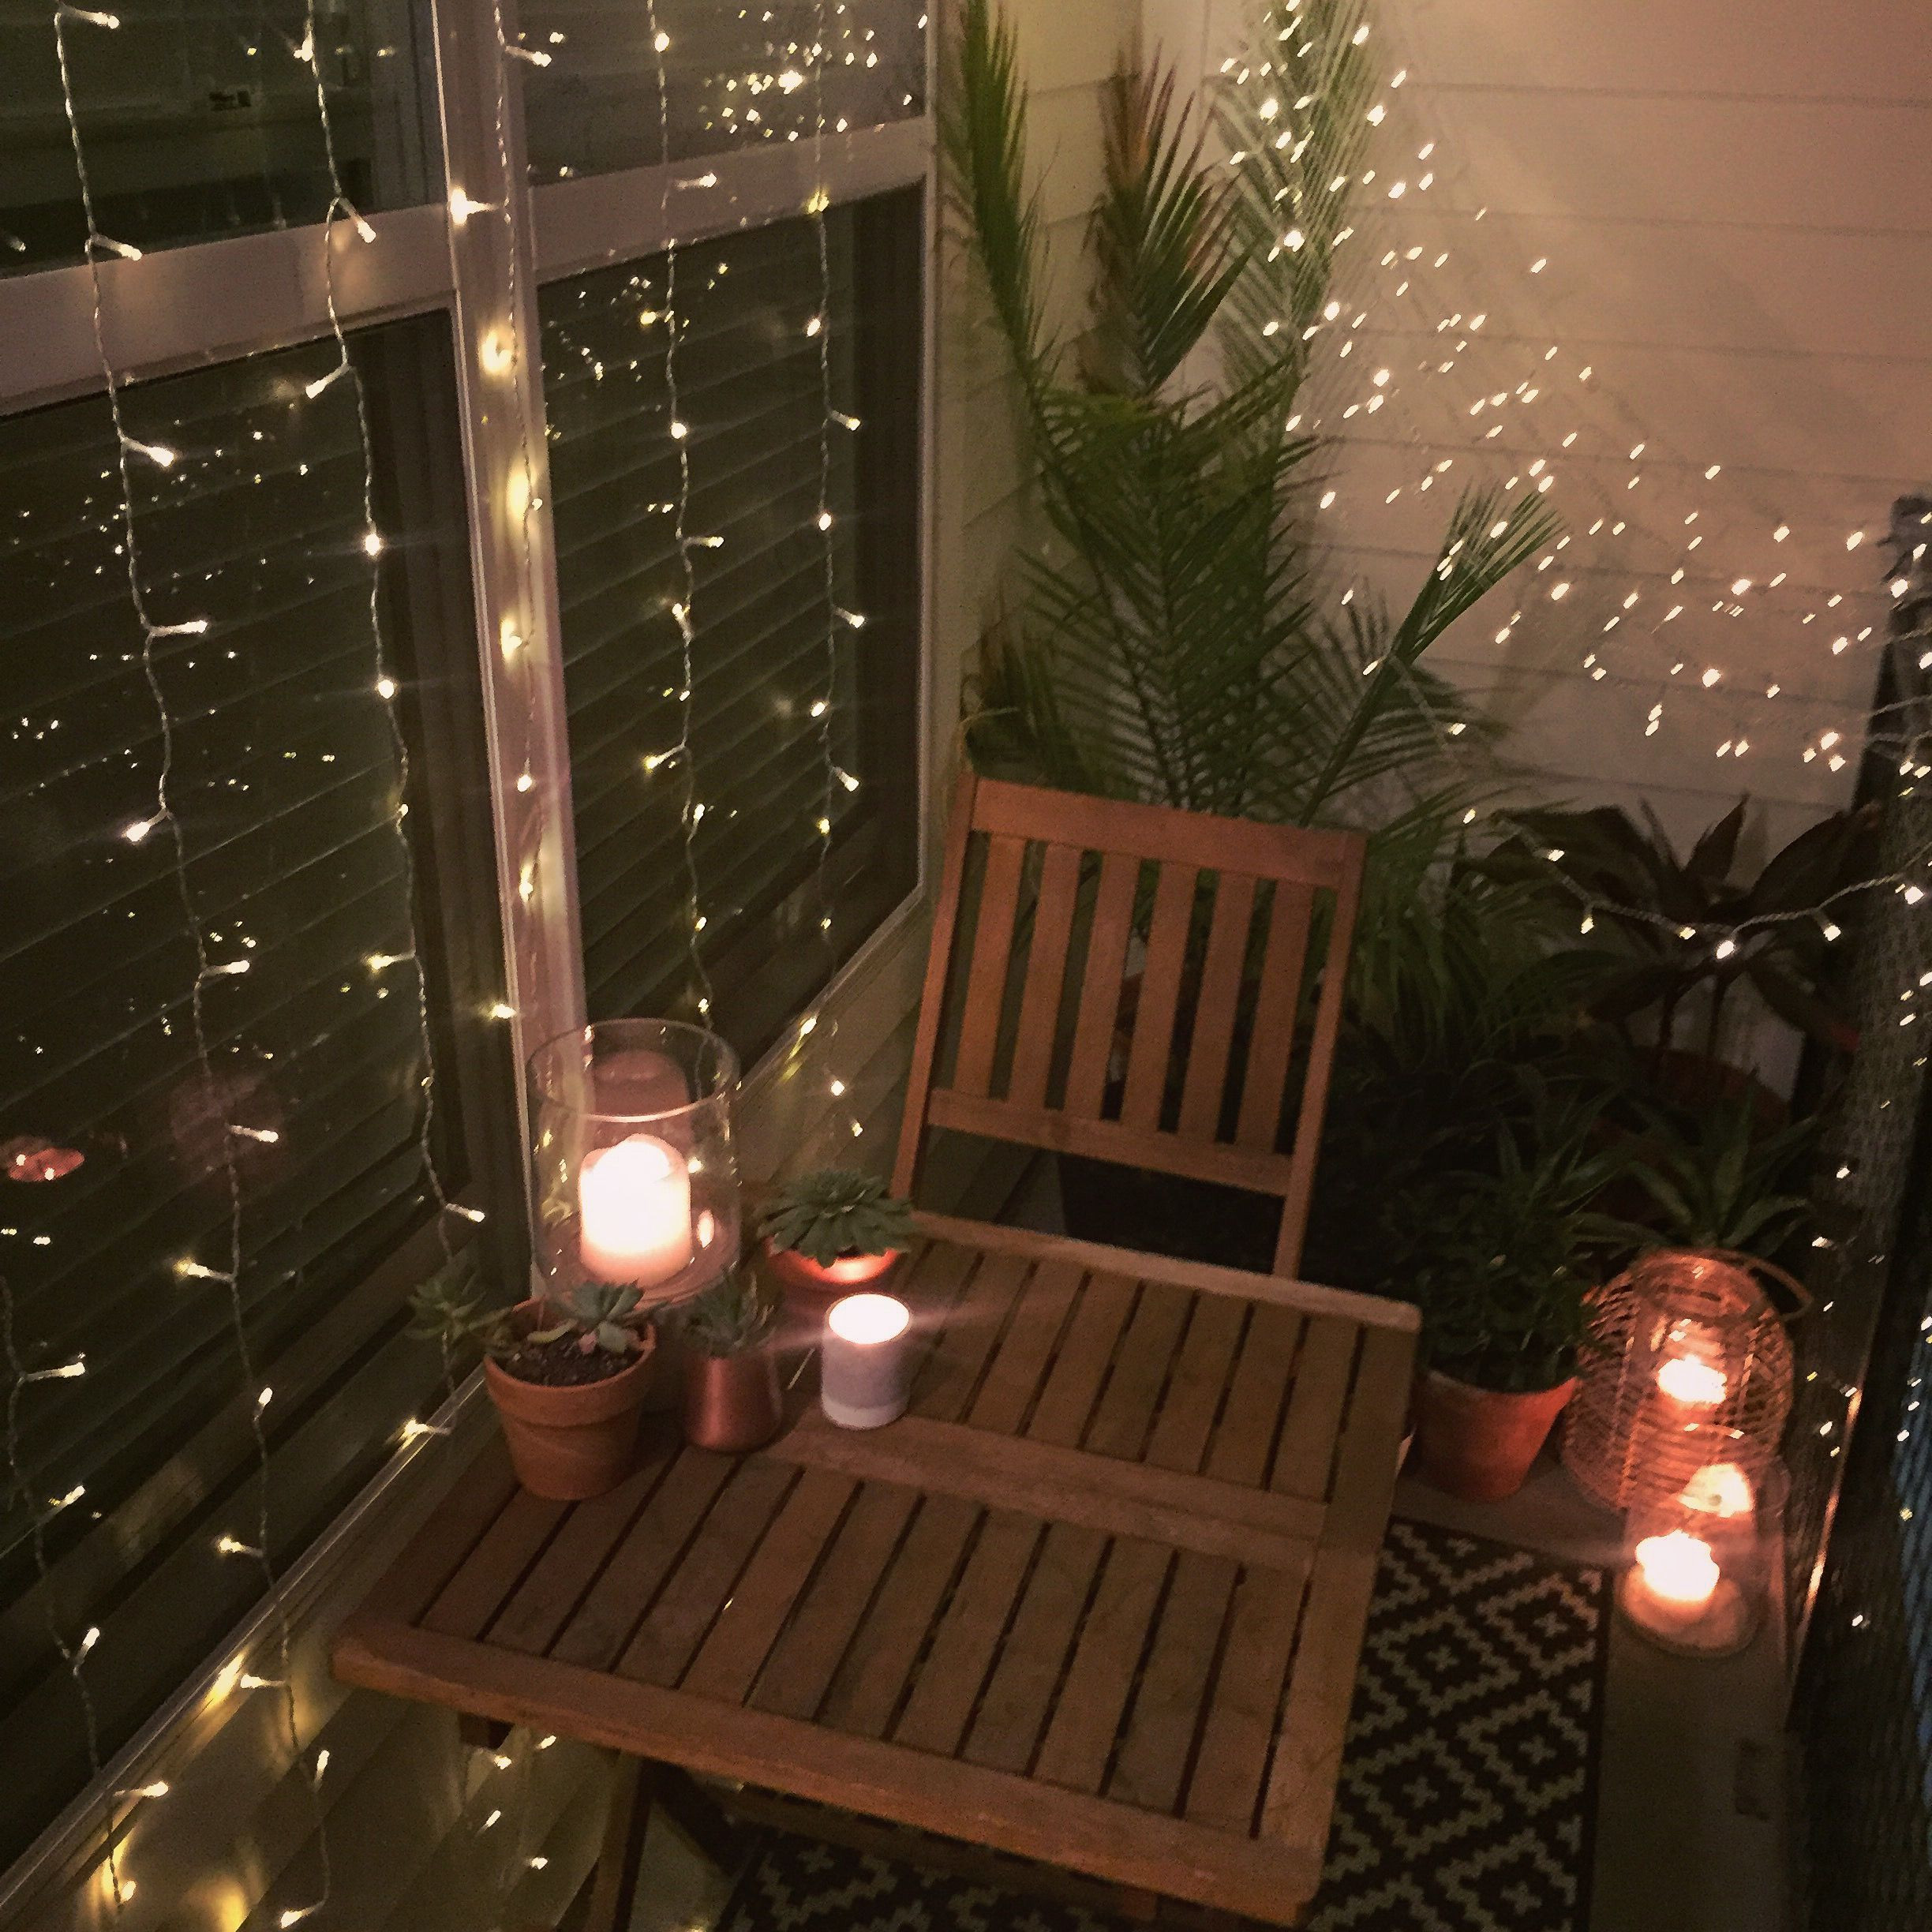 Apartment Patio Christmas Decorating Ideas  Small balcony decor ideas for an apartment Hanging string